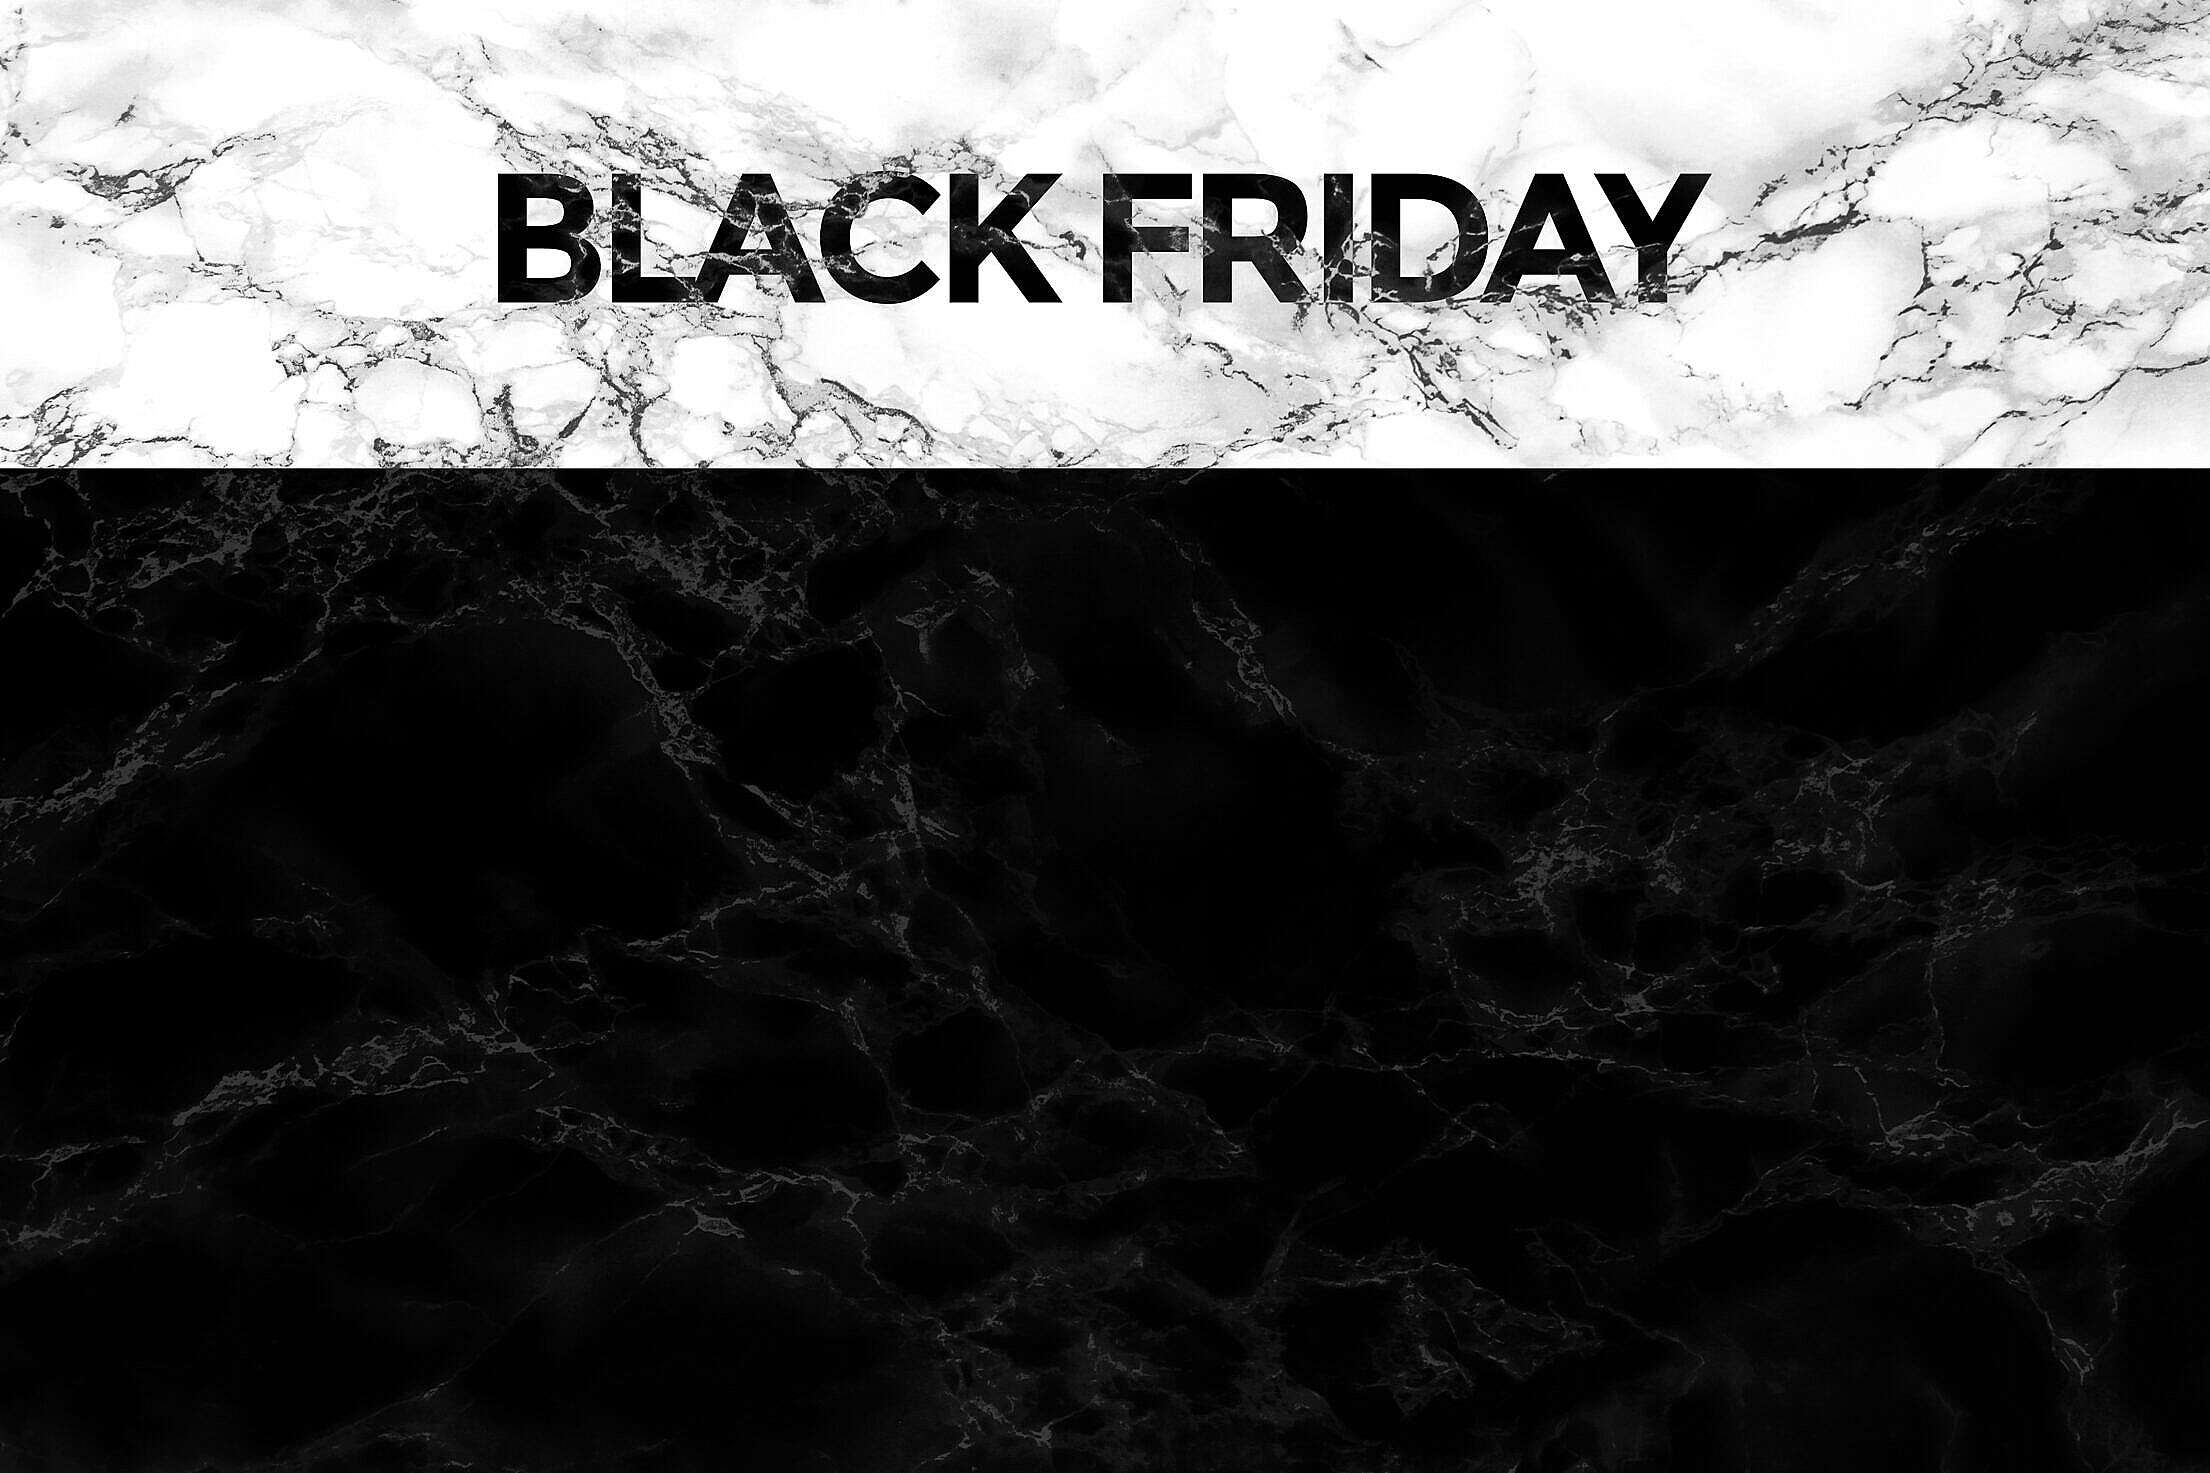 Black Friday Marble Card with Place for Text Free Stock Photo